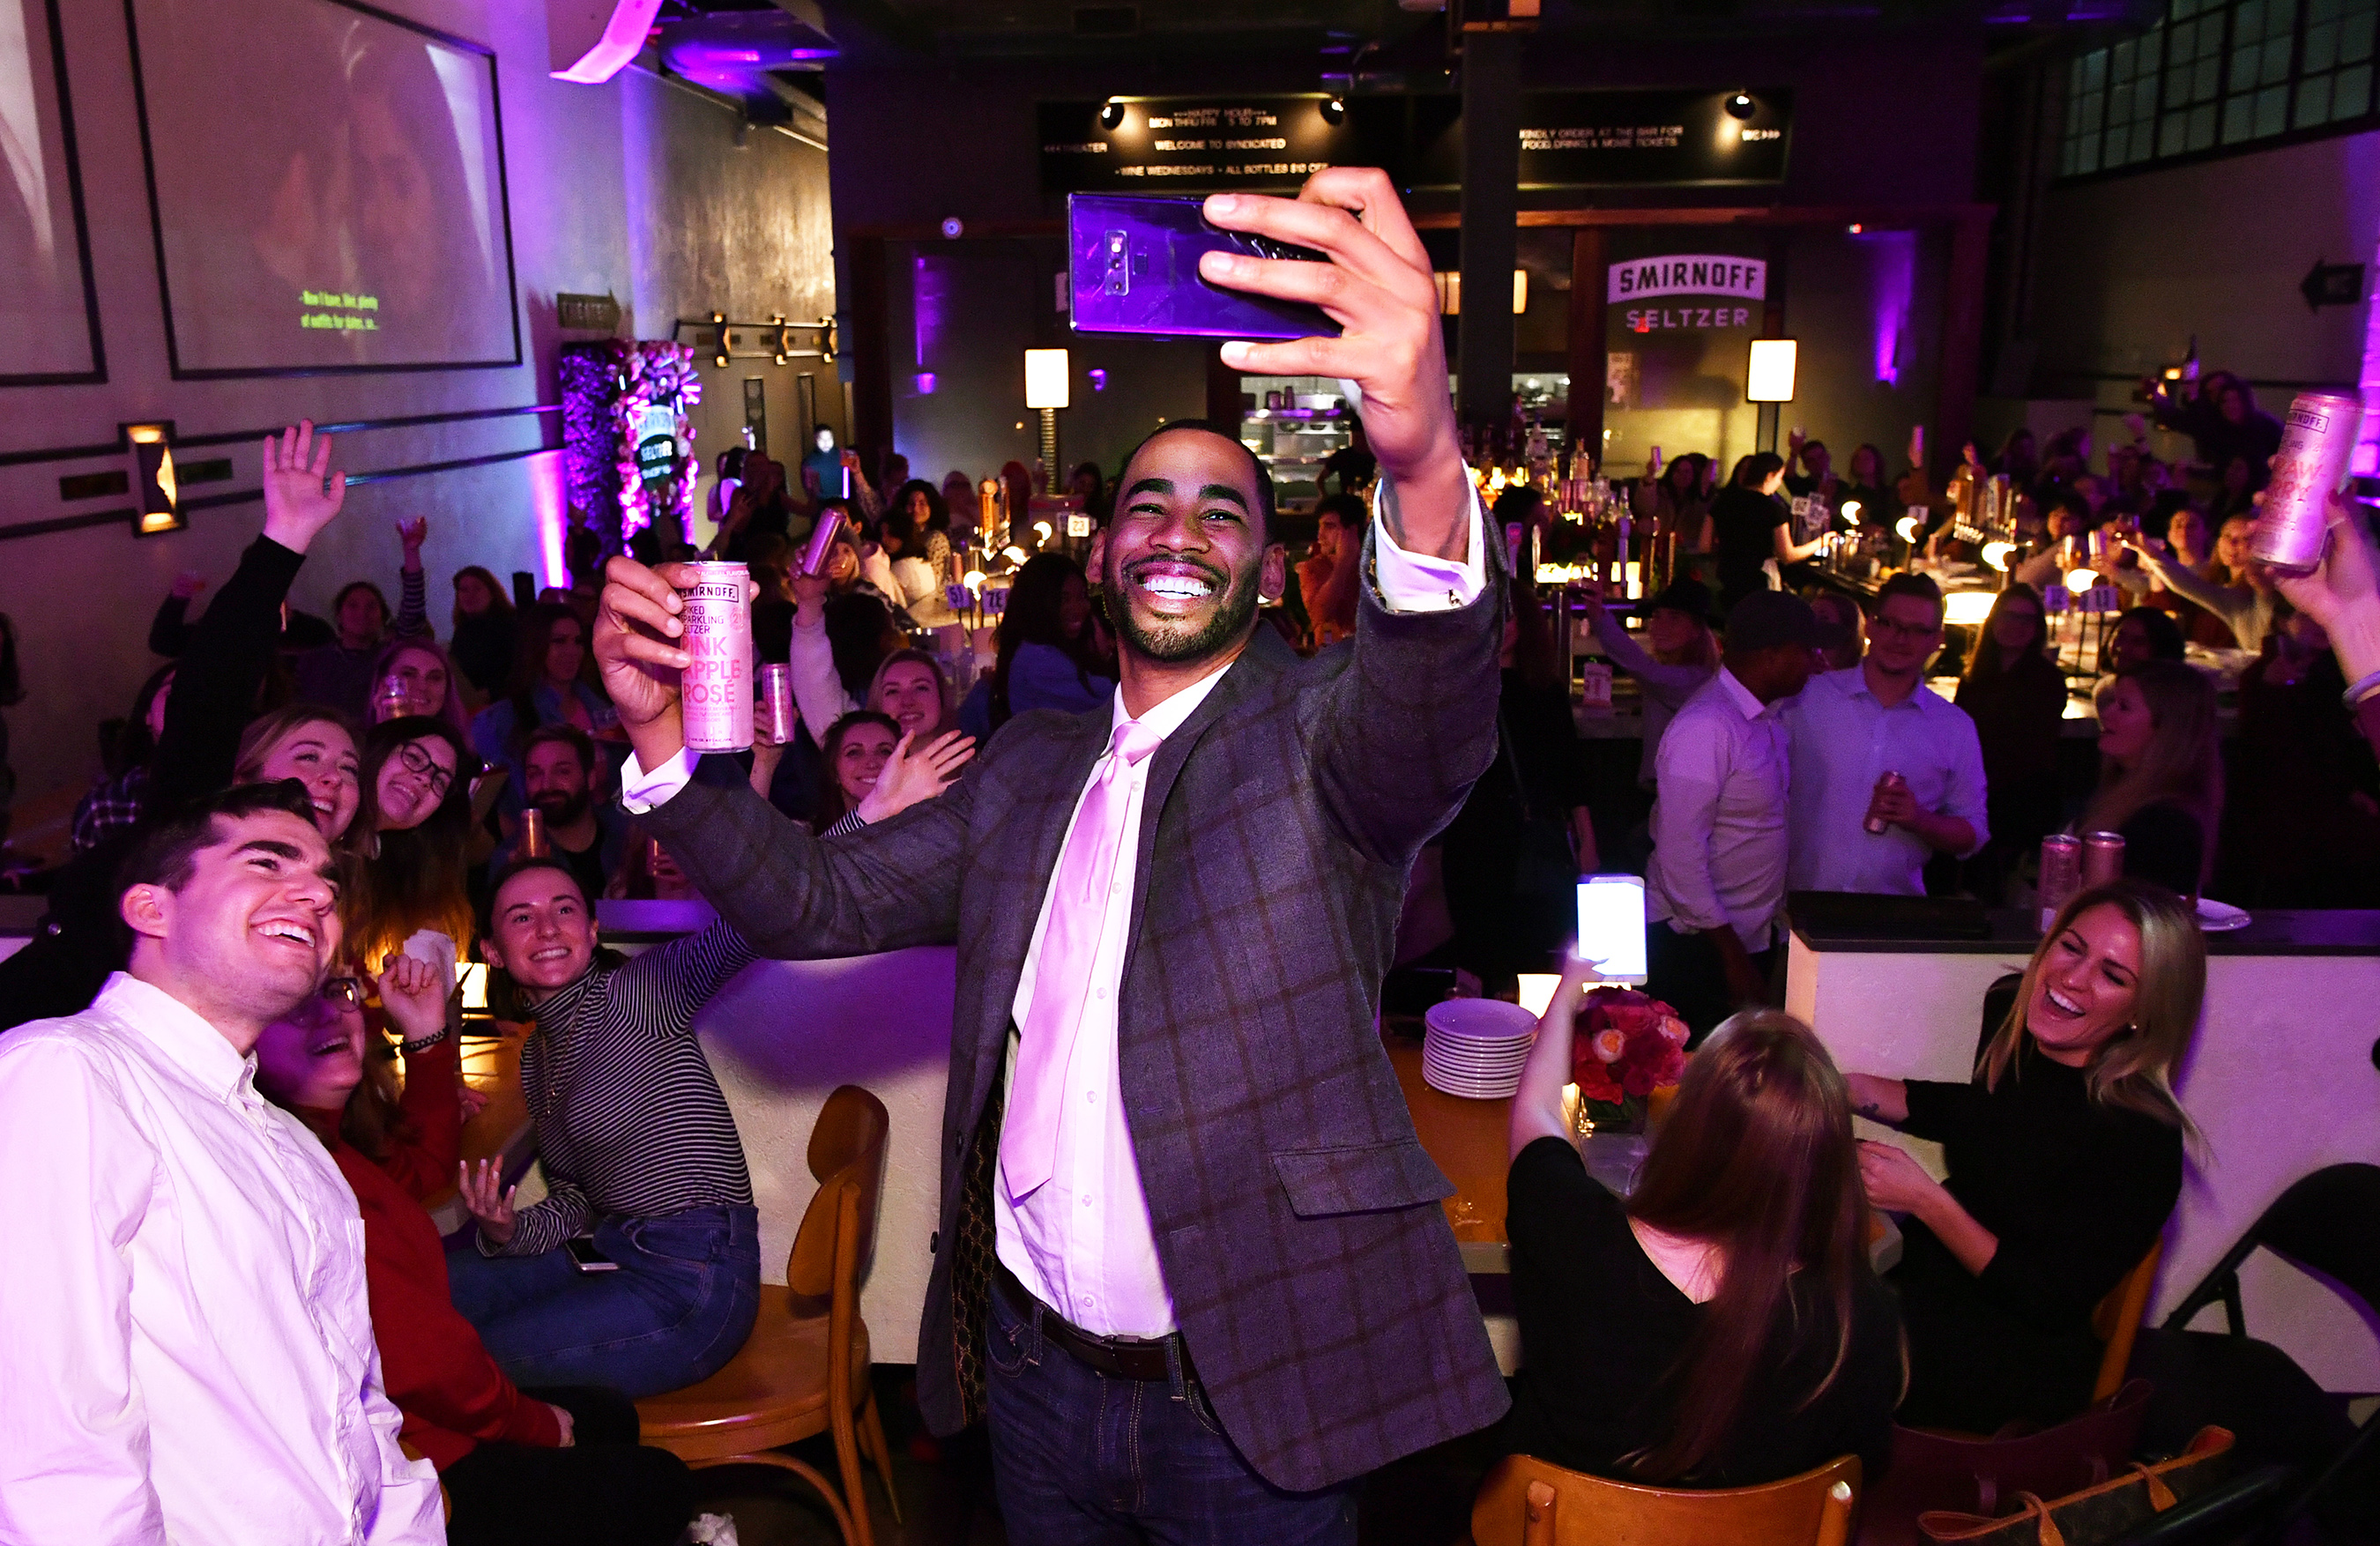 Mike Johnson invites Bachelor Super Fans to Join Him in a Toast to the Quest to Find Love with Smirnoff Seltzer Pink Apple Rosè in Brooklyn on Monday.